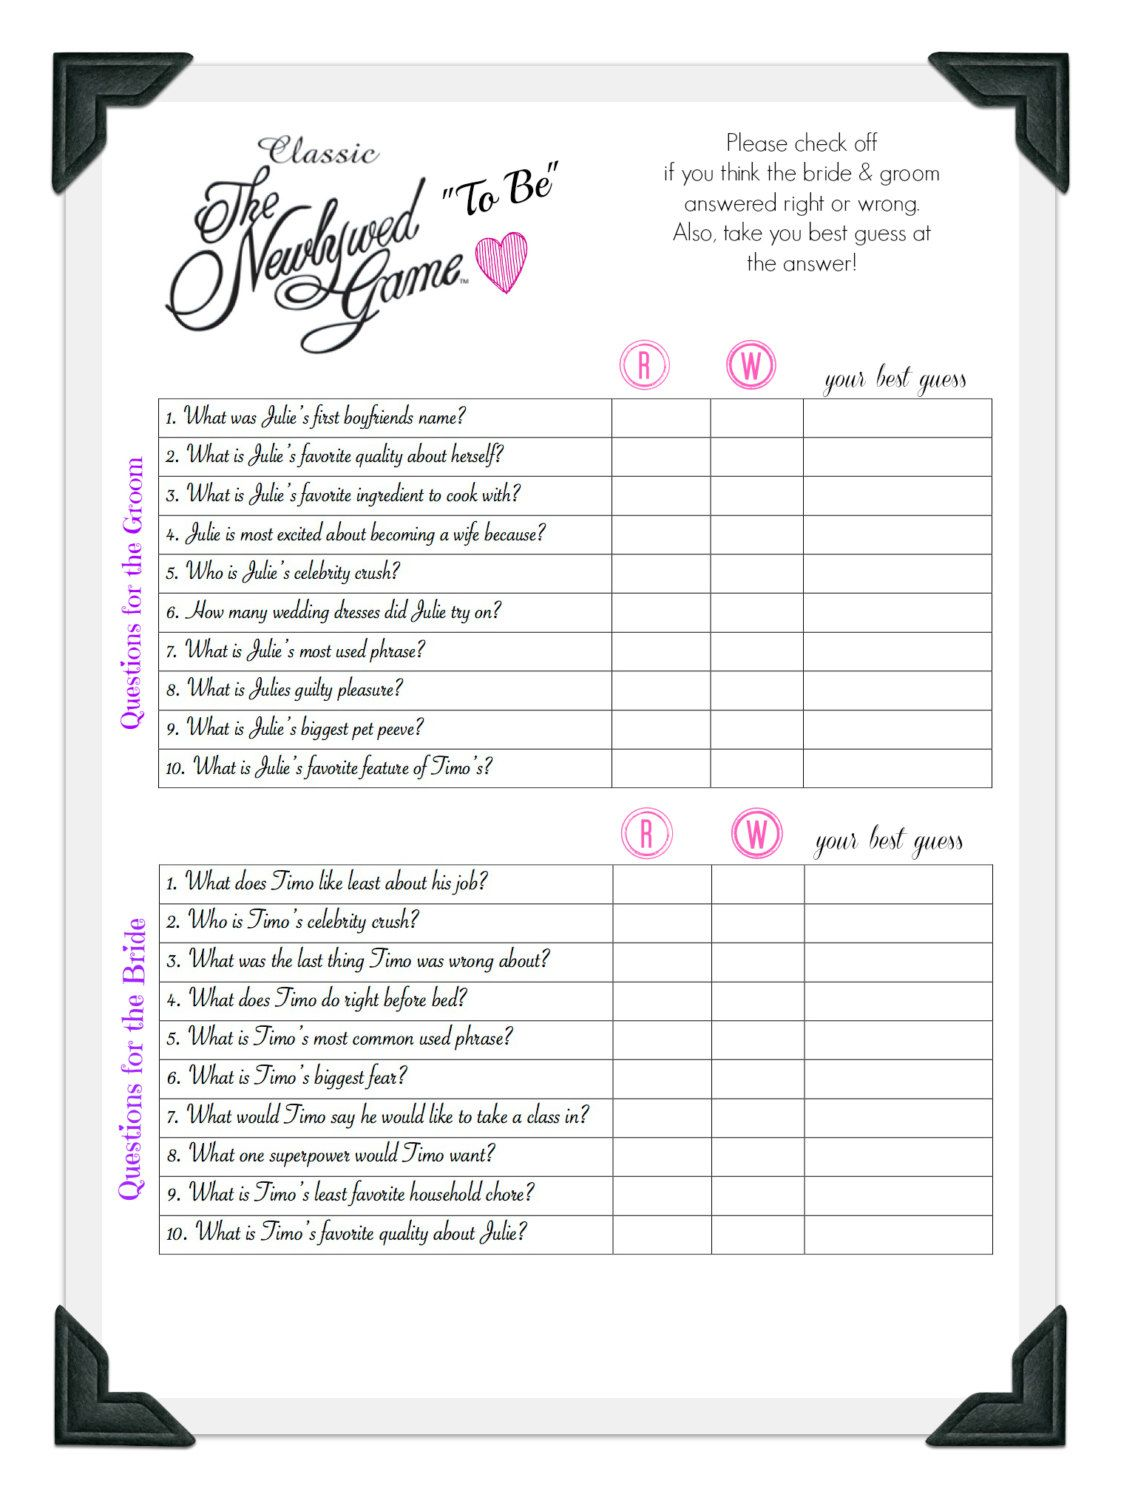 Questions for newlywed game for bridal shower